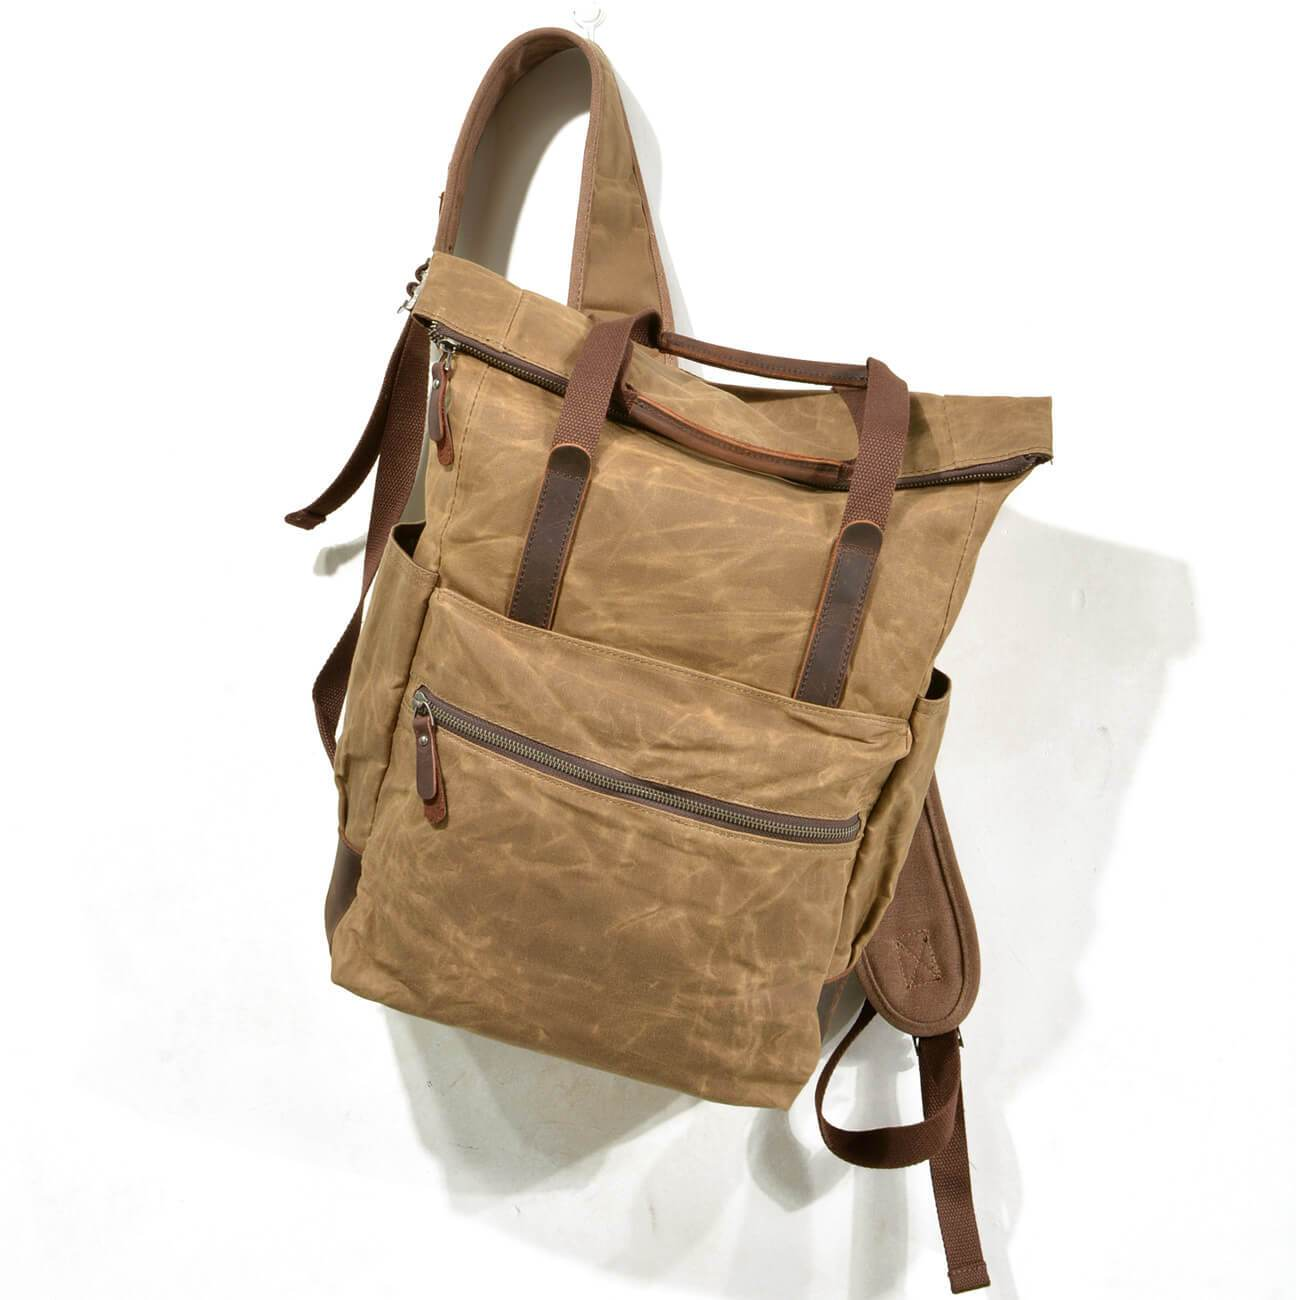 Retro Style Waterproof Leather Canvas Shoulder Bag